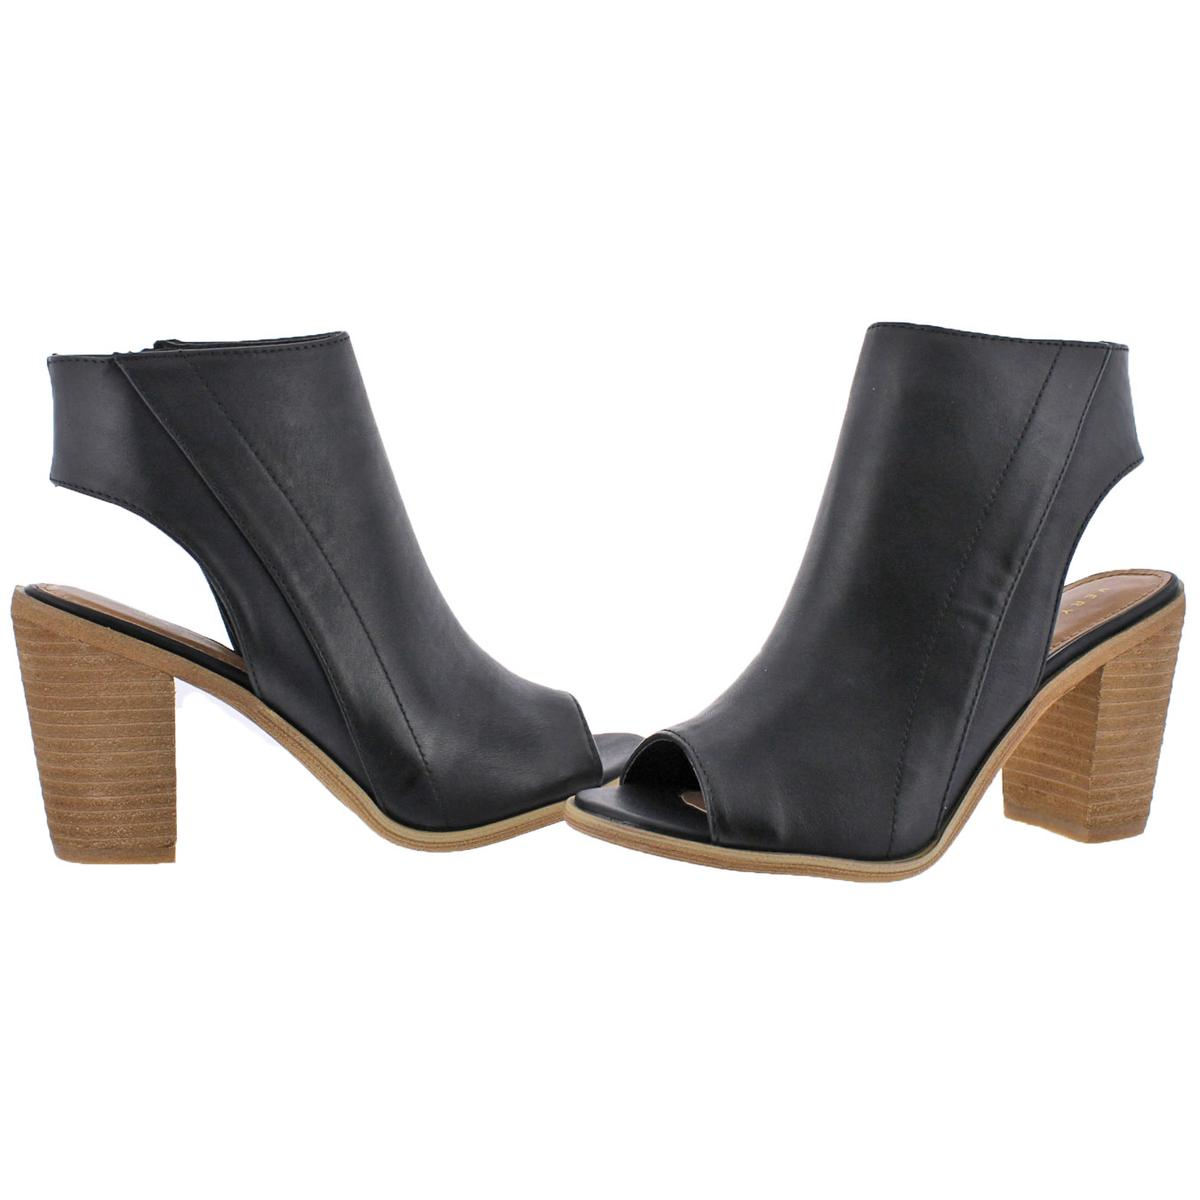 9ed5f4c41511 Very Volatile Michelle Women s Open Toe Dress Bootie Sandals Heels ...